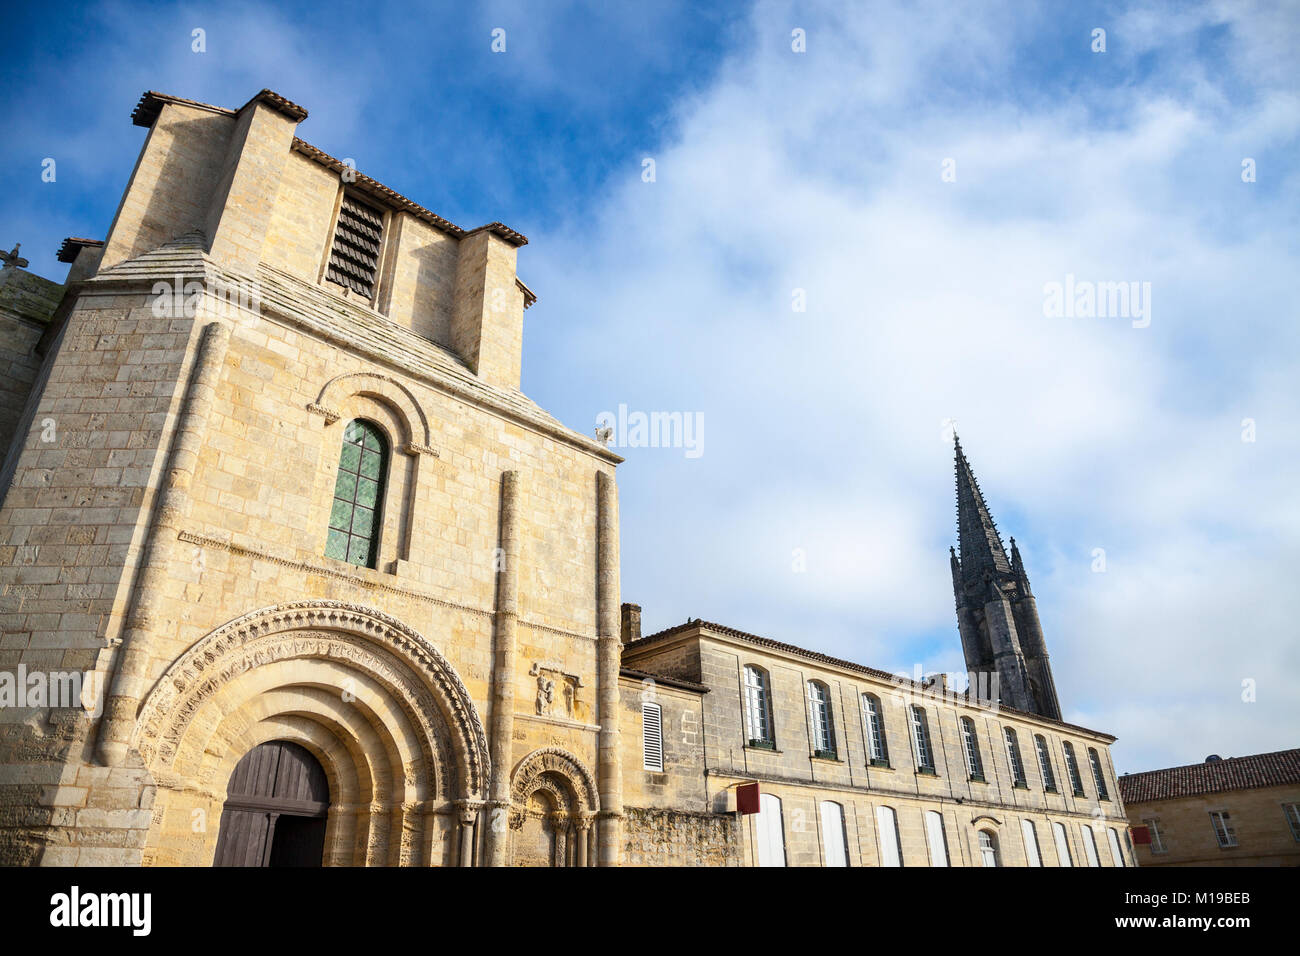 Entrance of Cloitre des Cordeliers (Cordeliers Cloister) in the city of Saint Emilion, in France. Famous for its - Stock Image